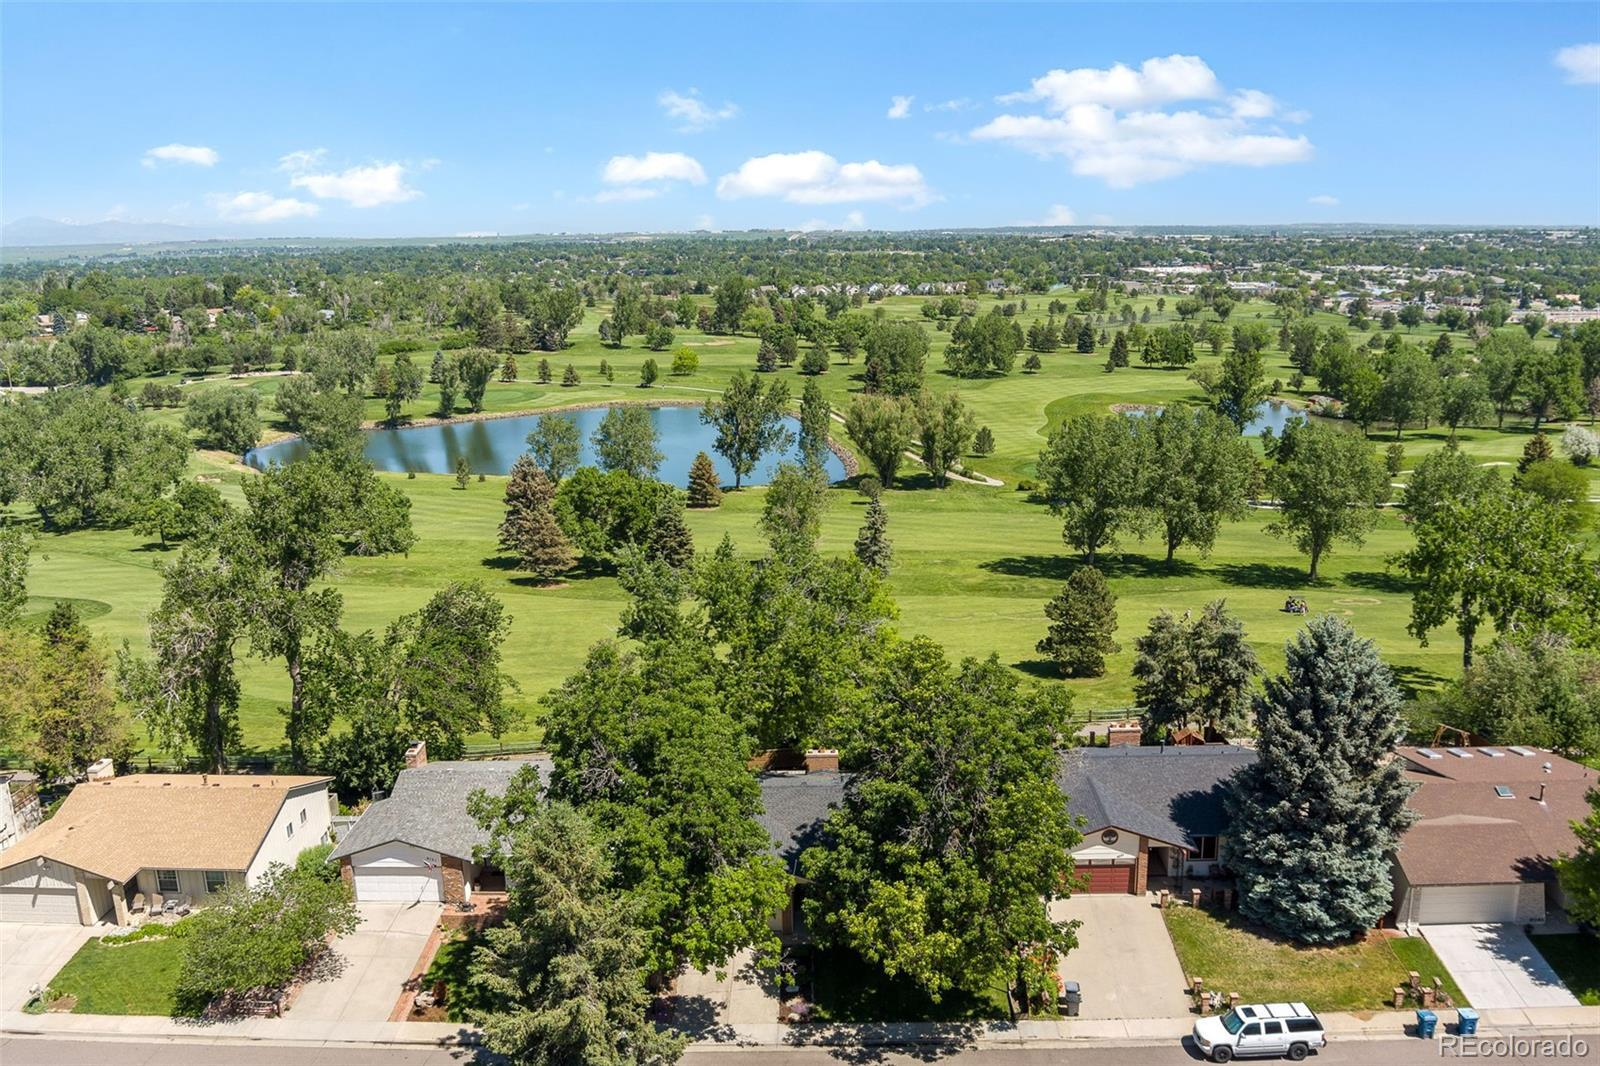 8111 W 72nd Place, Arvada, CO 80005 - #: 7129356